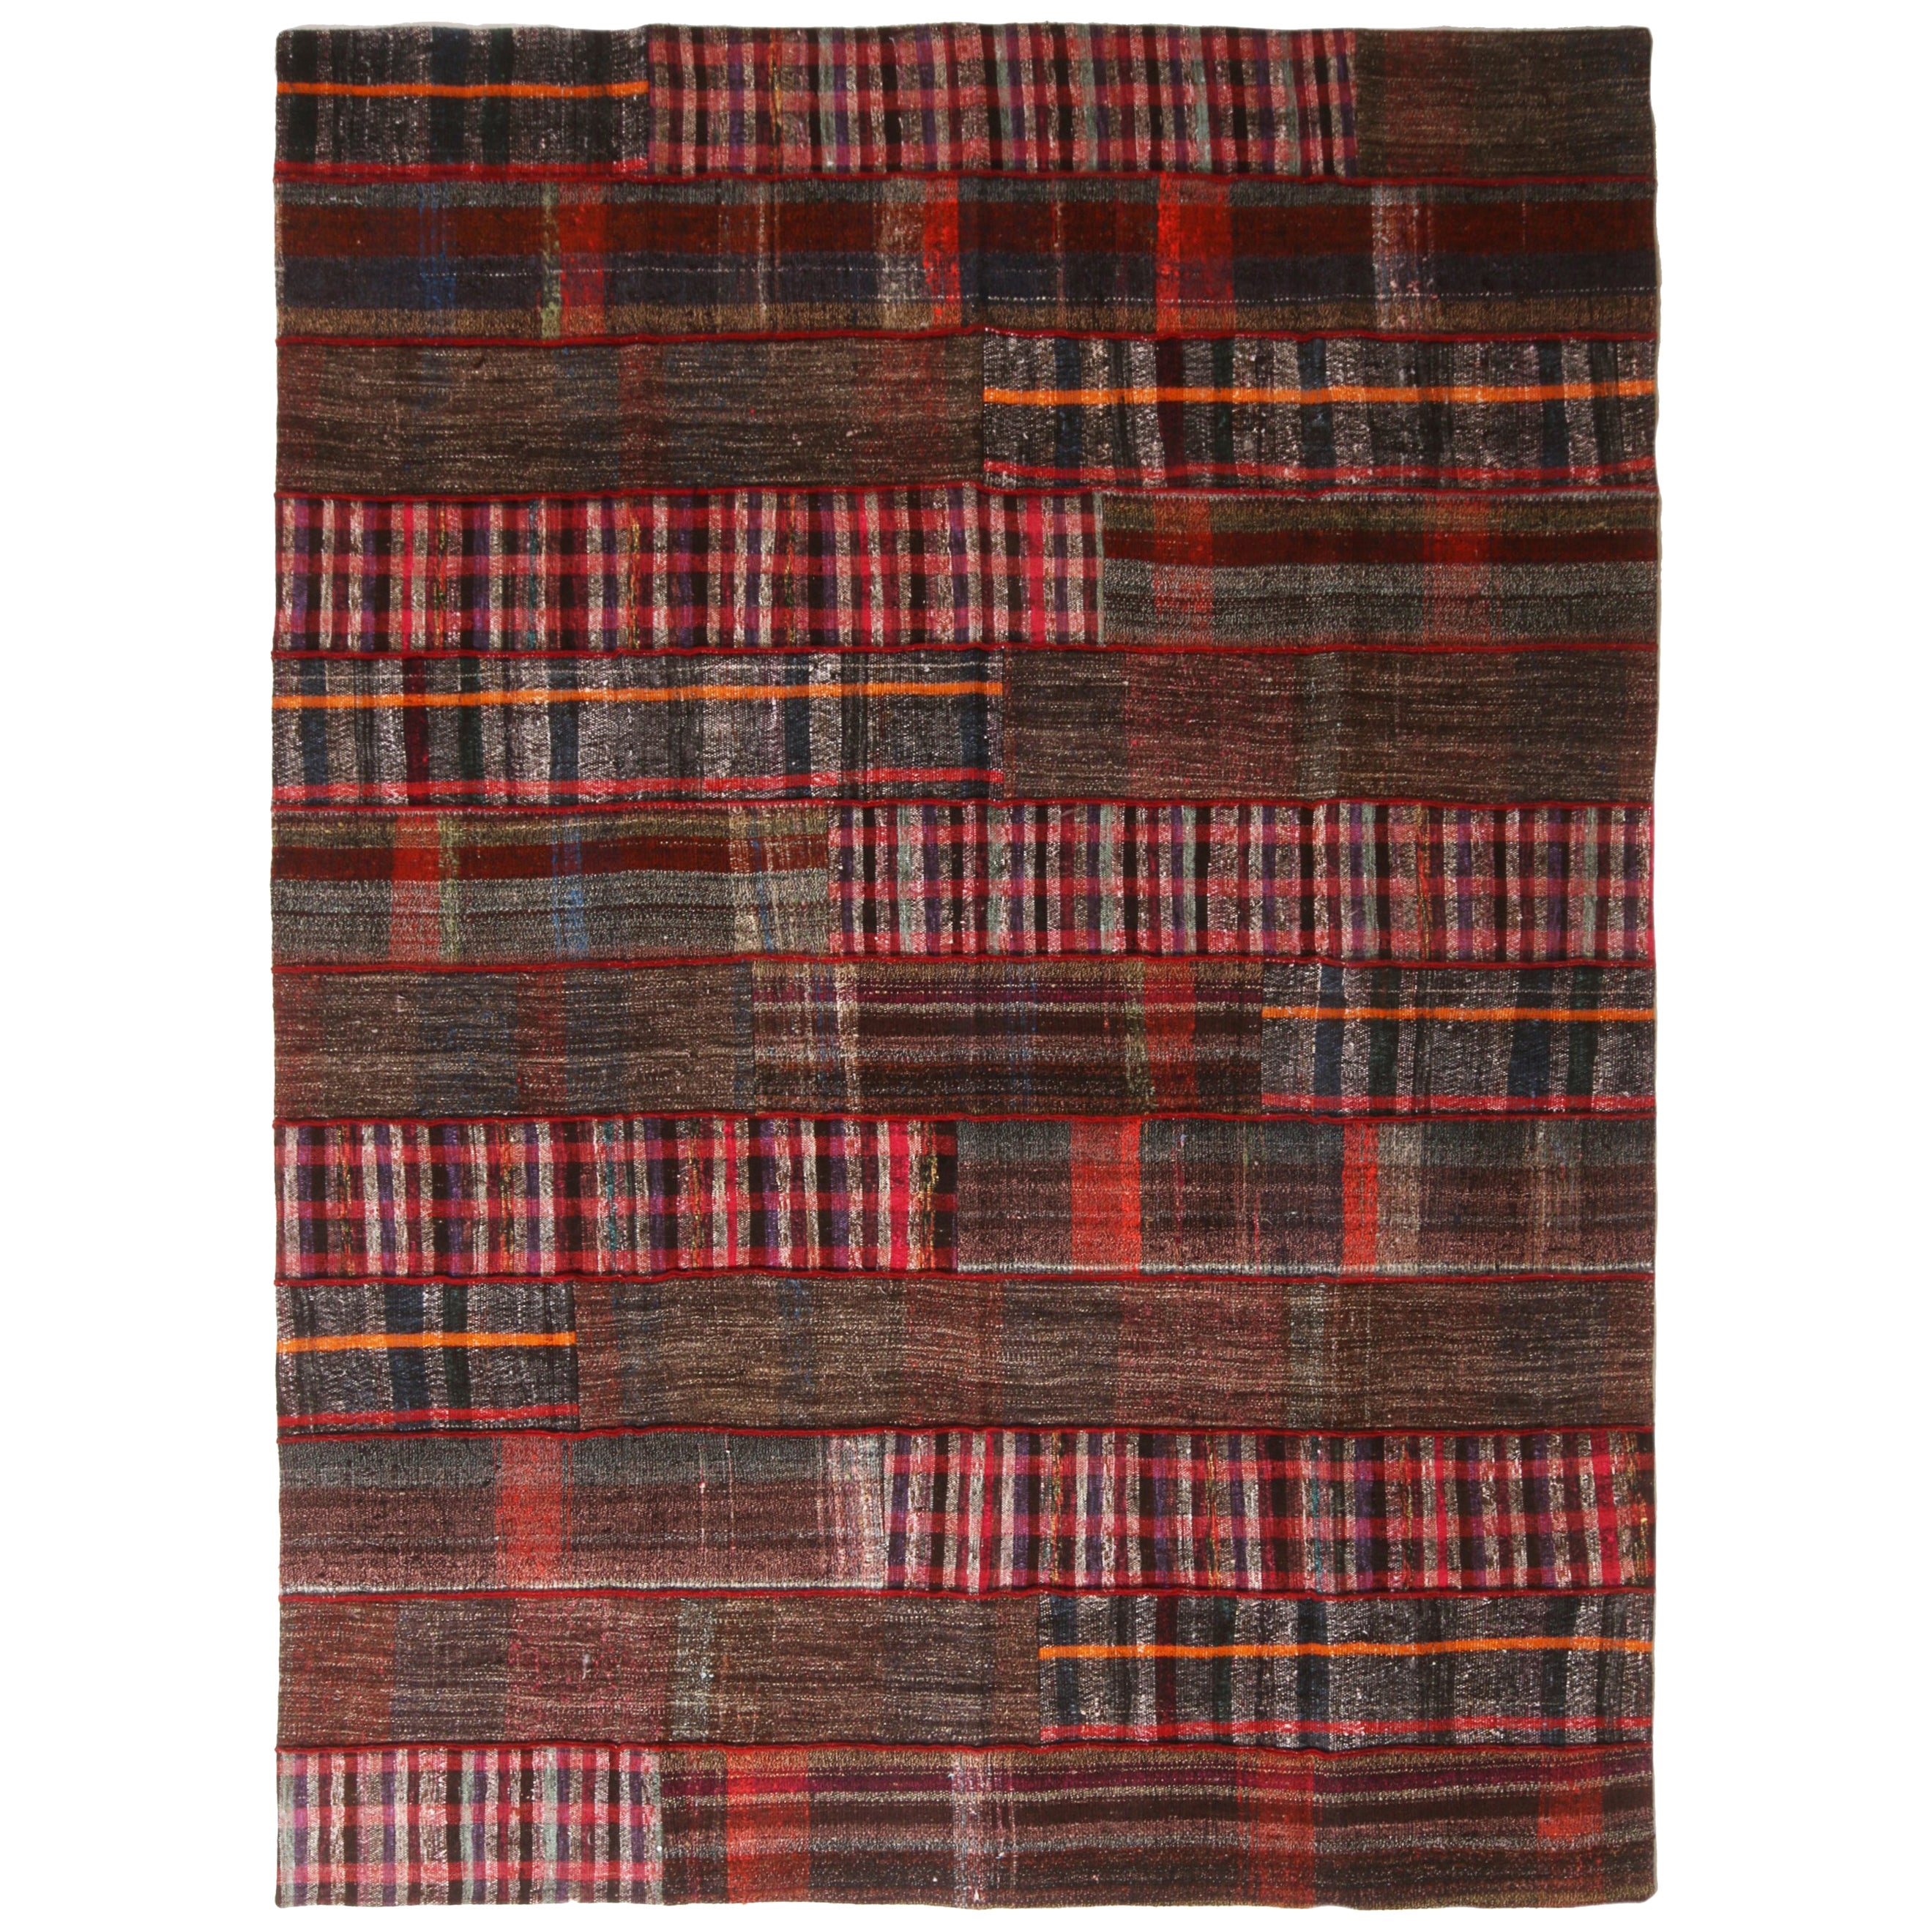 Rug & Kilim's Contemporary Red and Multi-Color Wool Kilim Rug